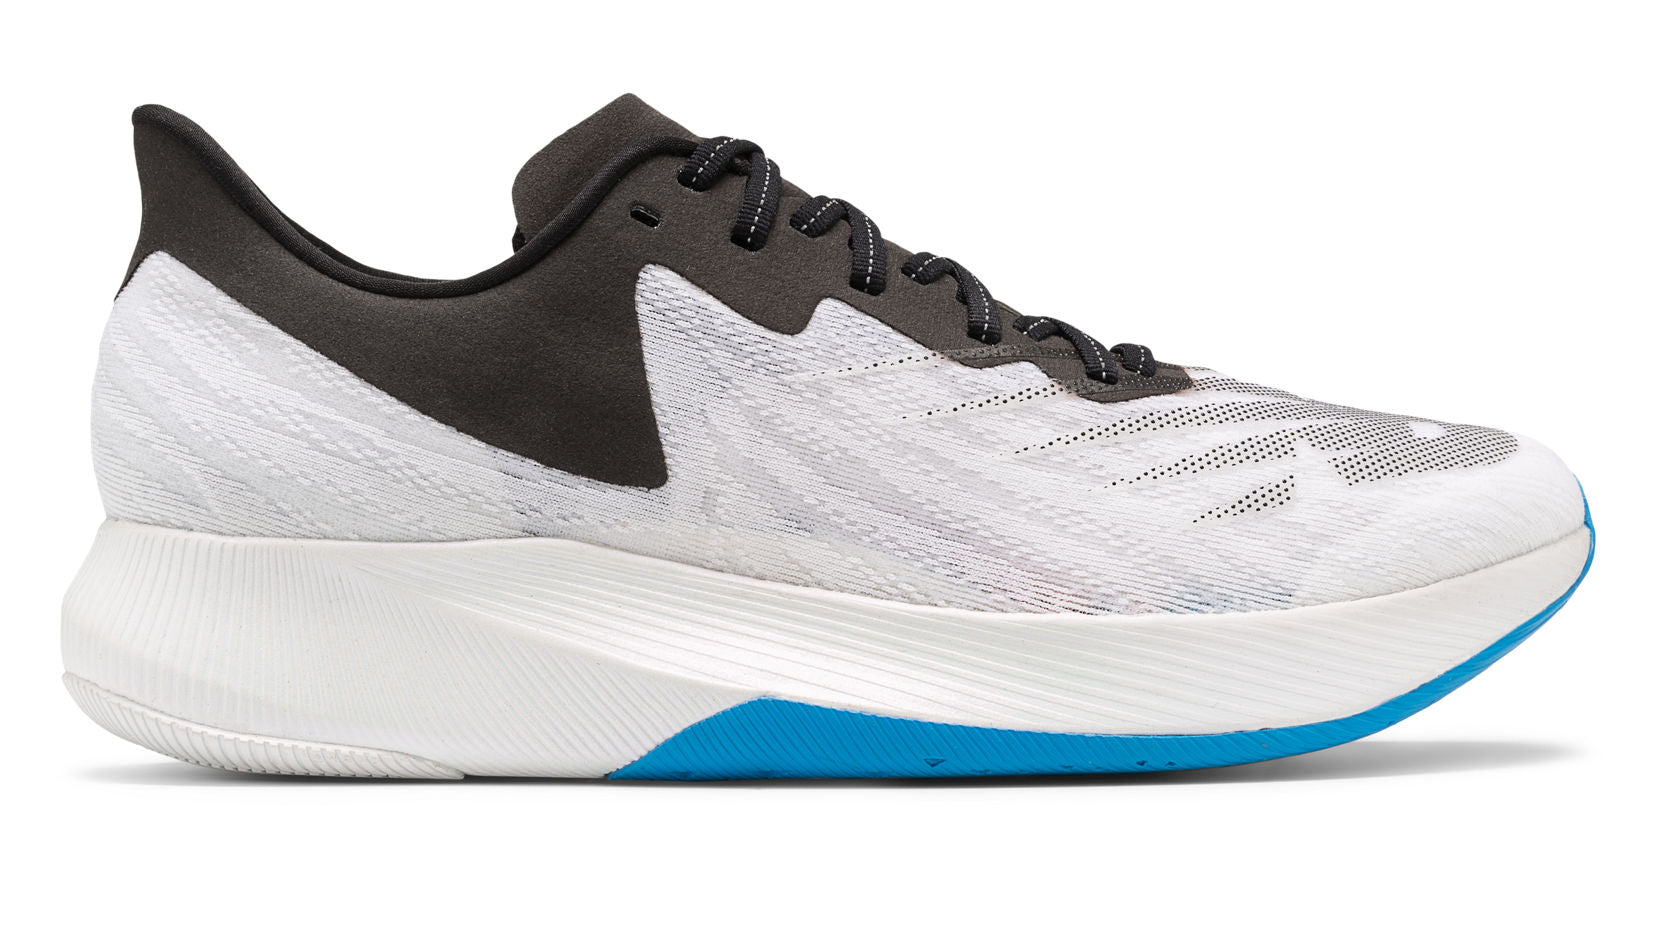 New Balance FuelCell TC women's